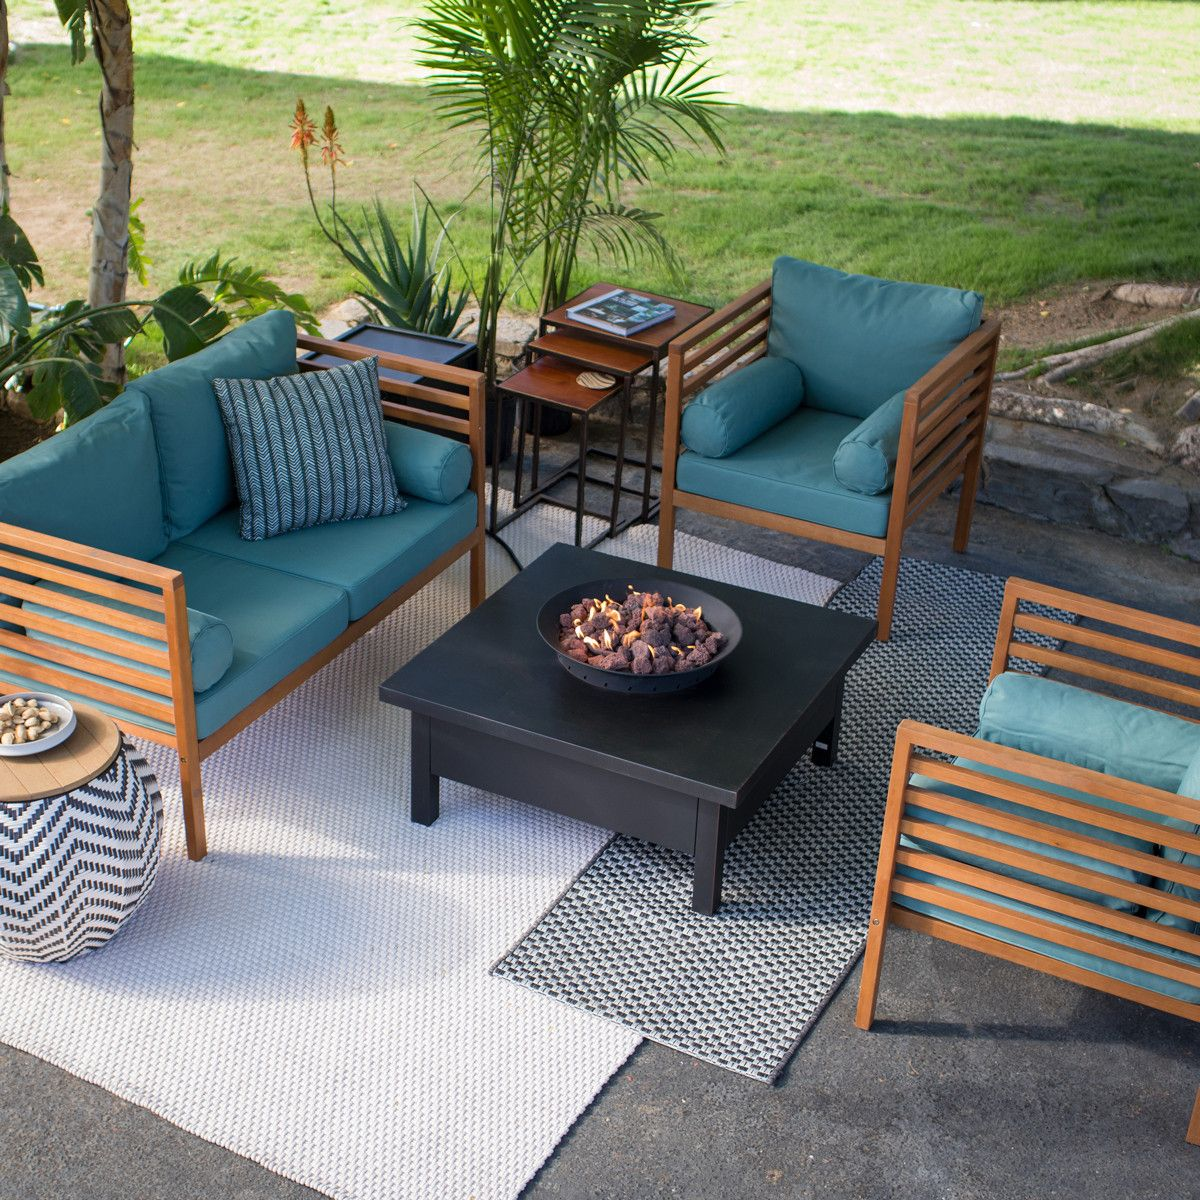 2020 Outdoor Furniture Ideas Trends Fire Pit Patio Set Wood